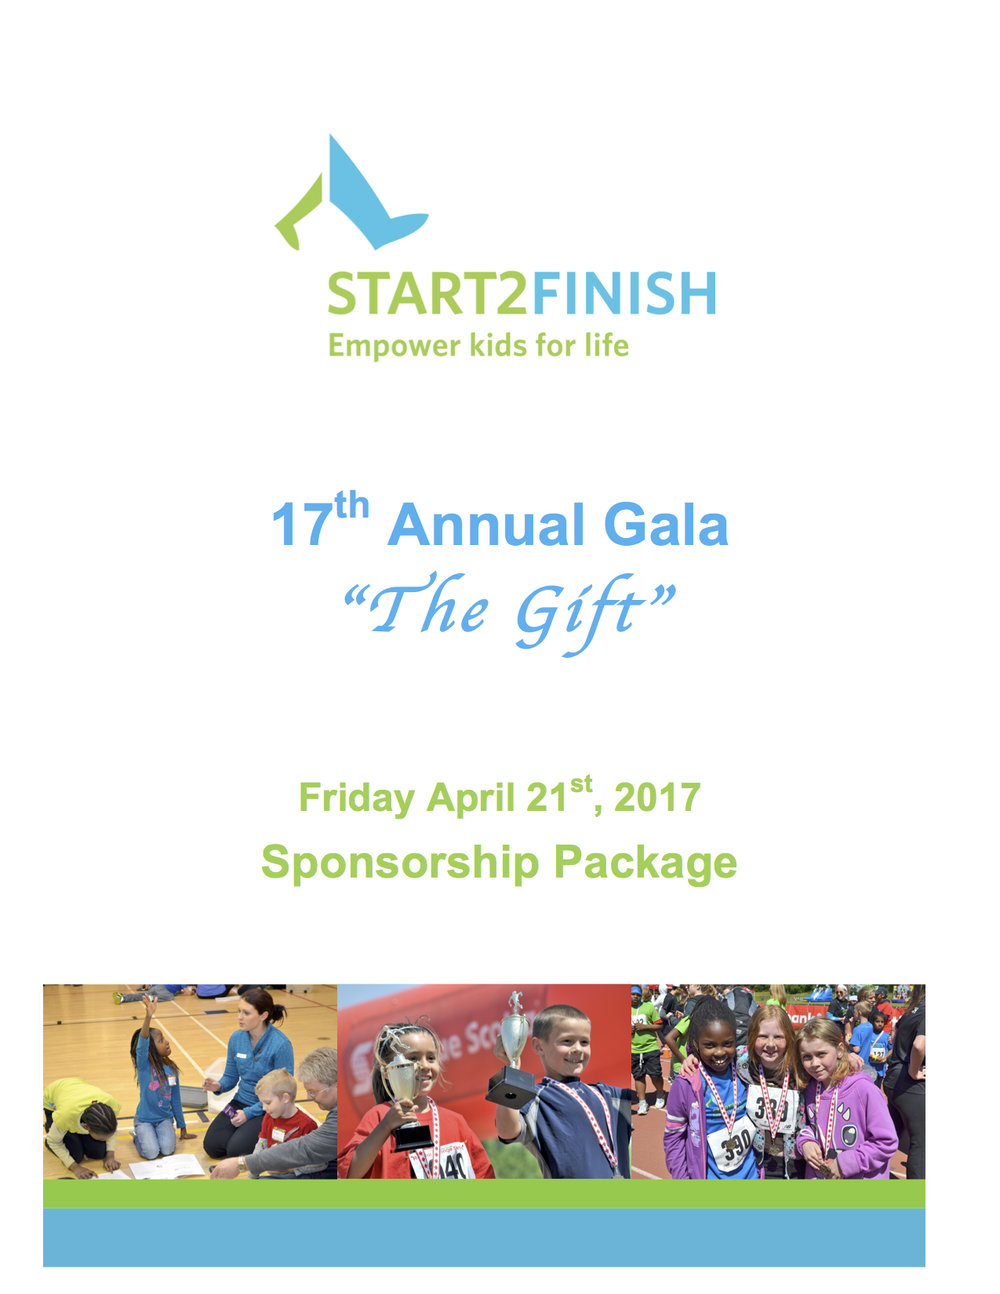 Sponsorship Package - S2F Gala 2017 PG 1.jpg